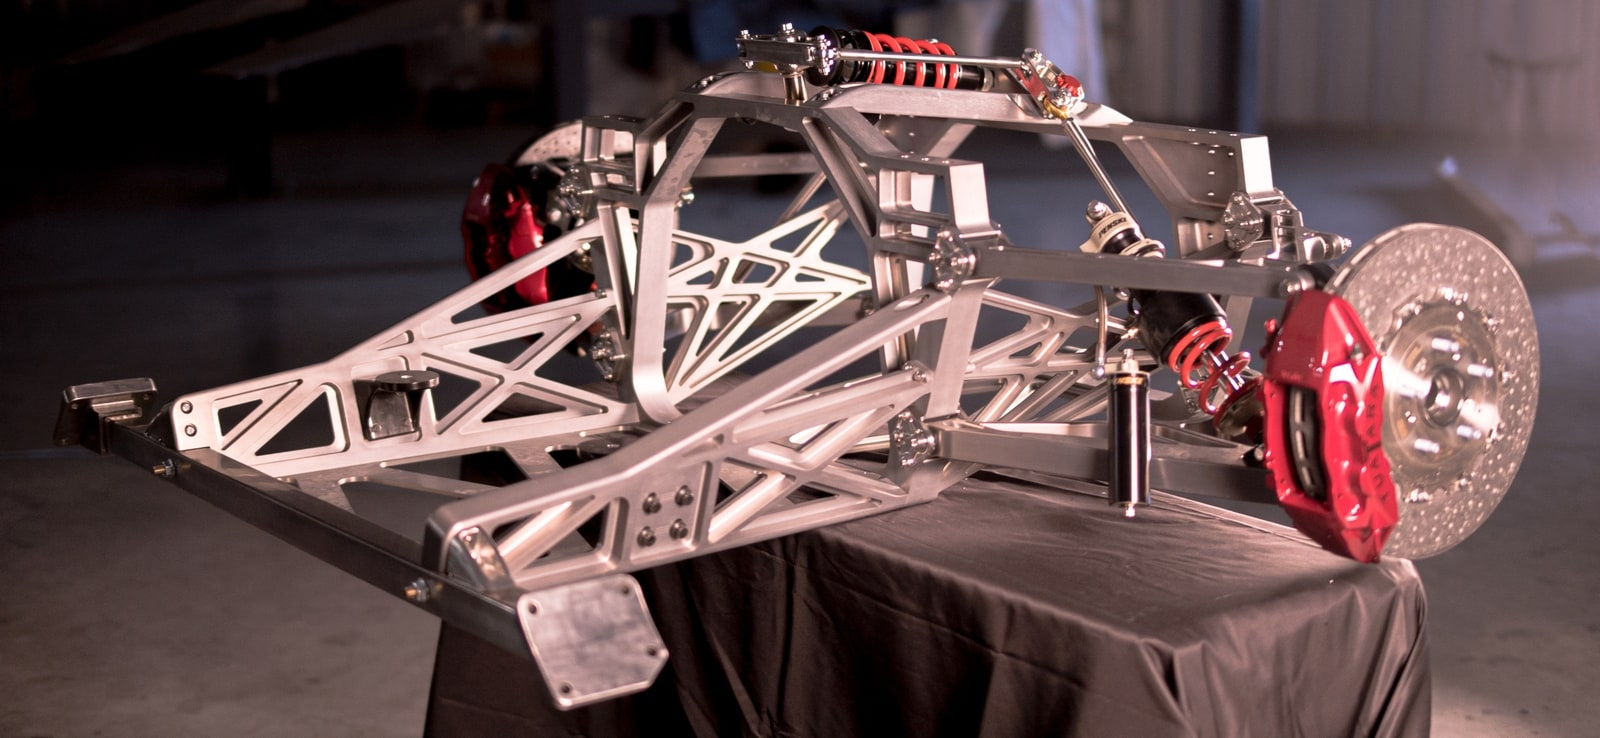 hypercar suspension chassis on stand